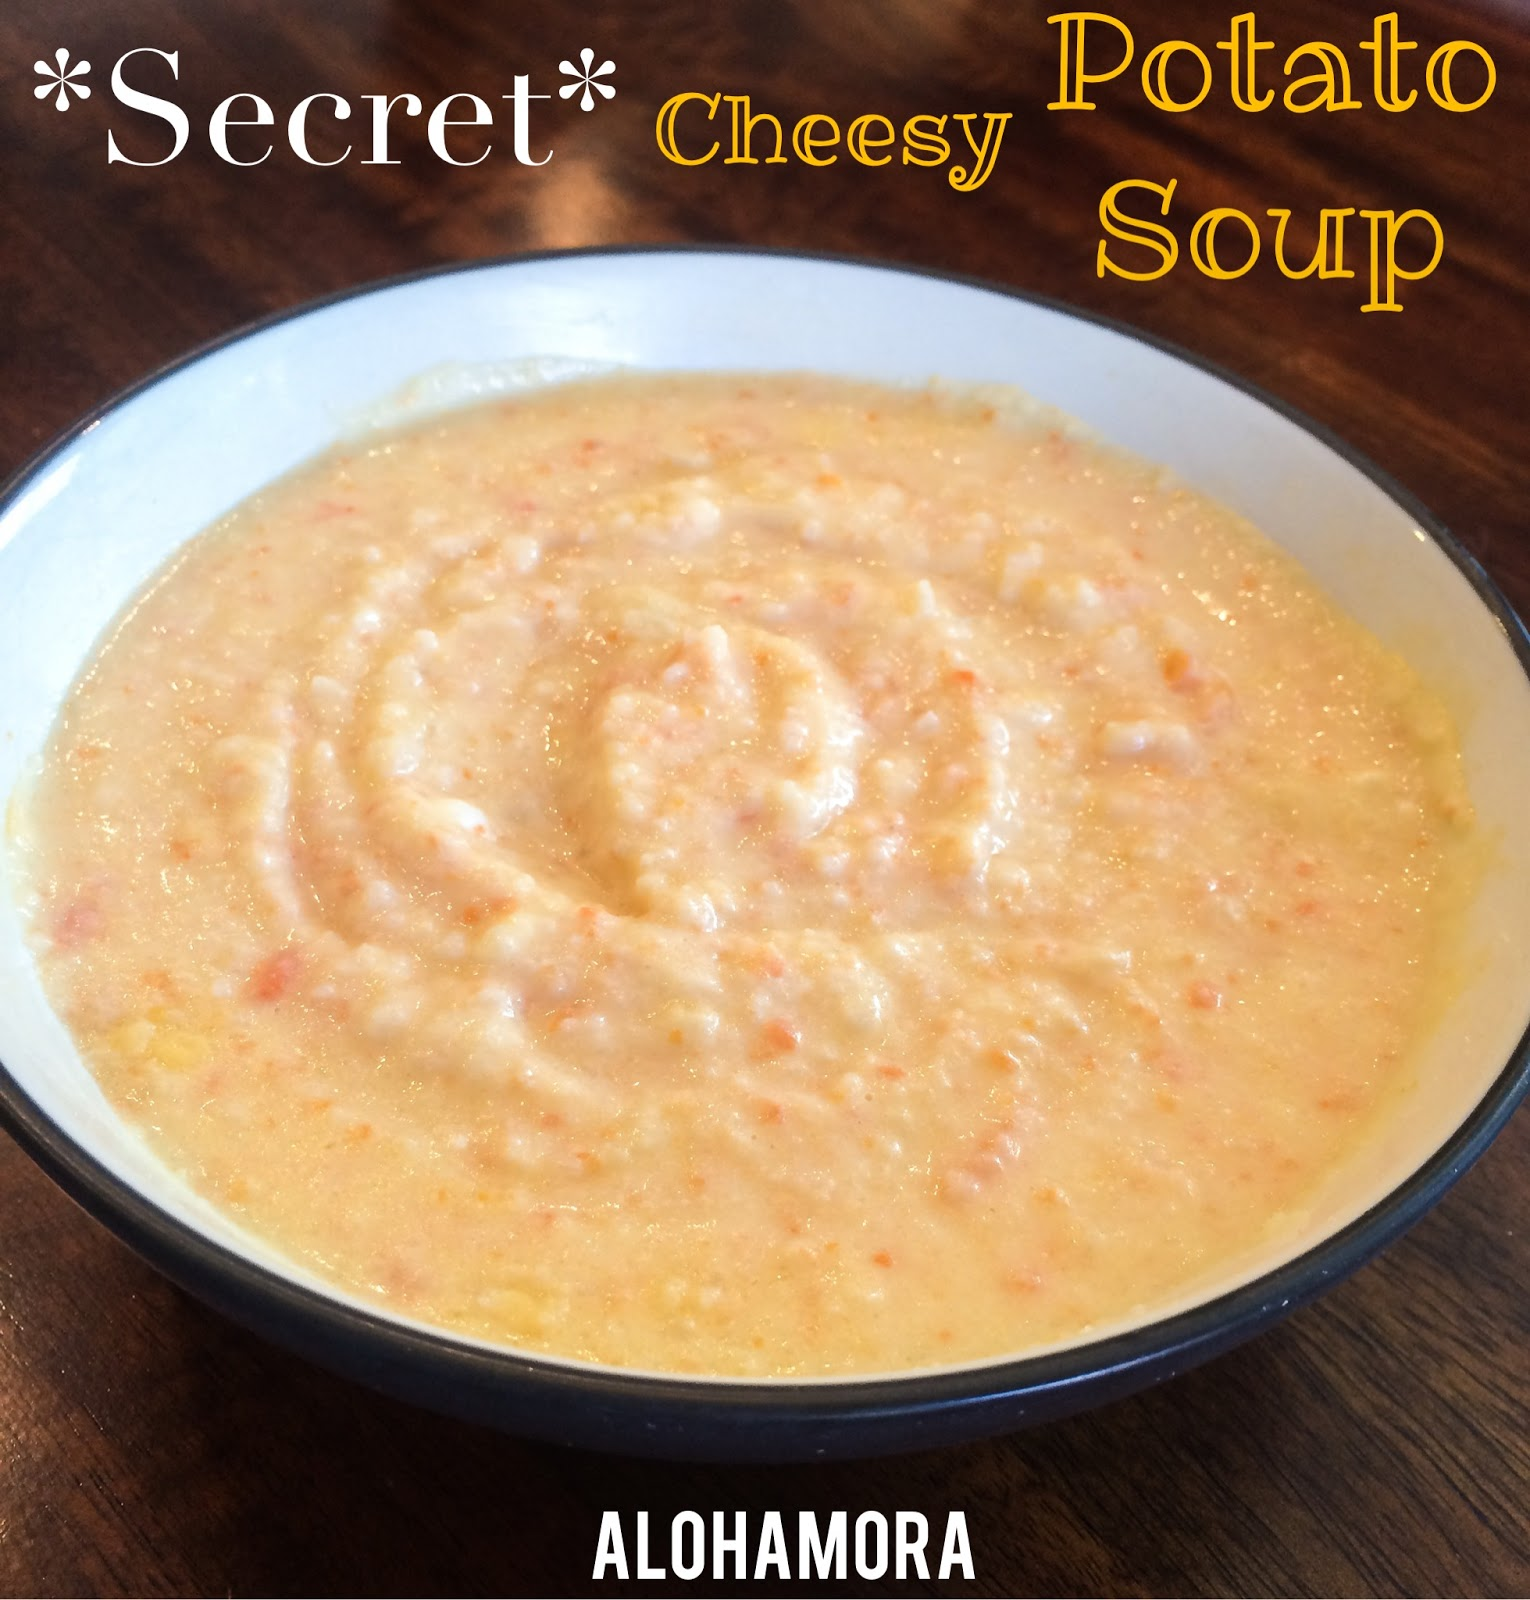 Secretly Skinny Cheesy Potato Soup.  Secret family recipe skinnified using cauliflower in this cheesy goodness of potato soup.  It's absolutely delicious and perfect dinner for a quick night.  Alohamora Open a Book http://alohamoraopenabook.blogspot.com/